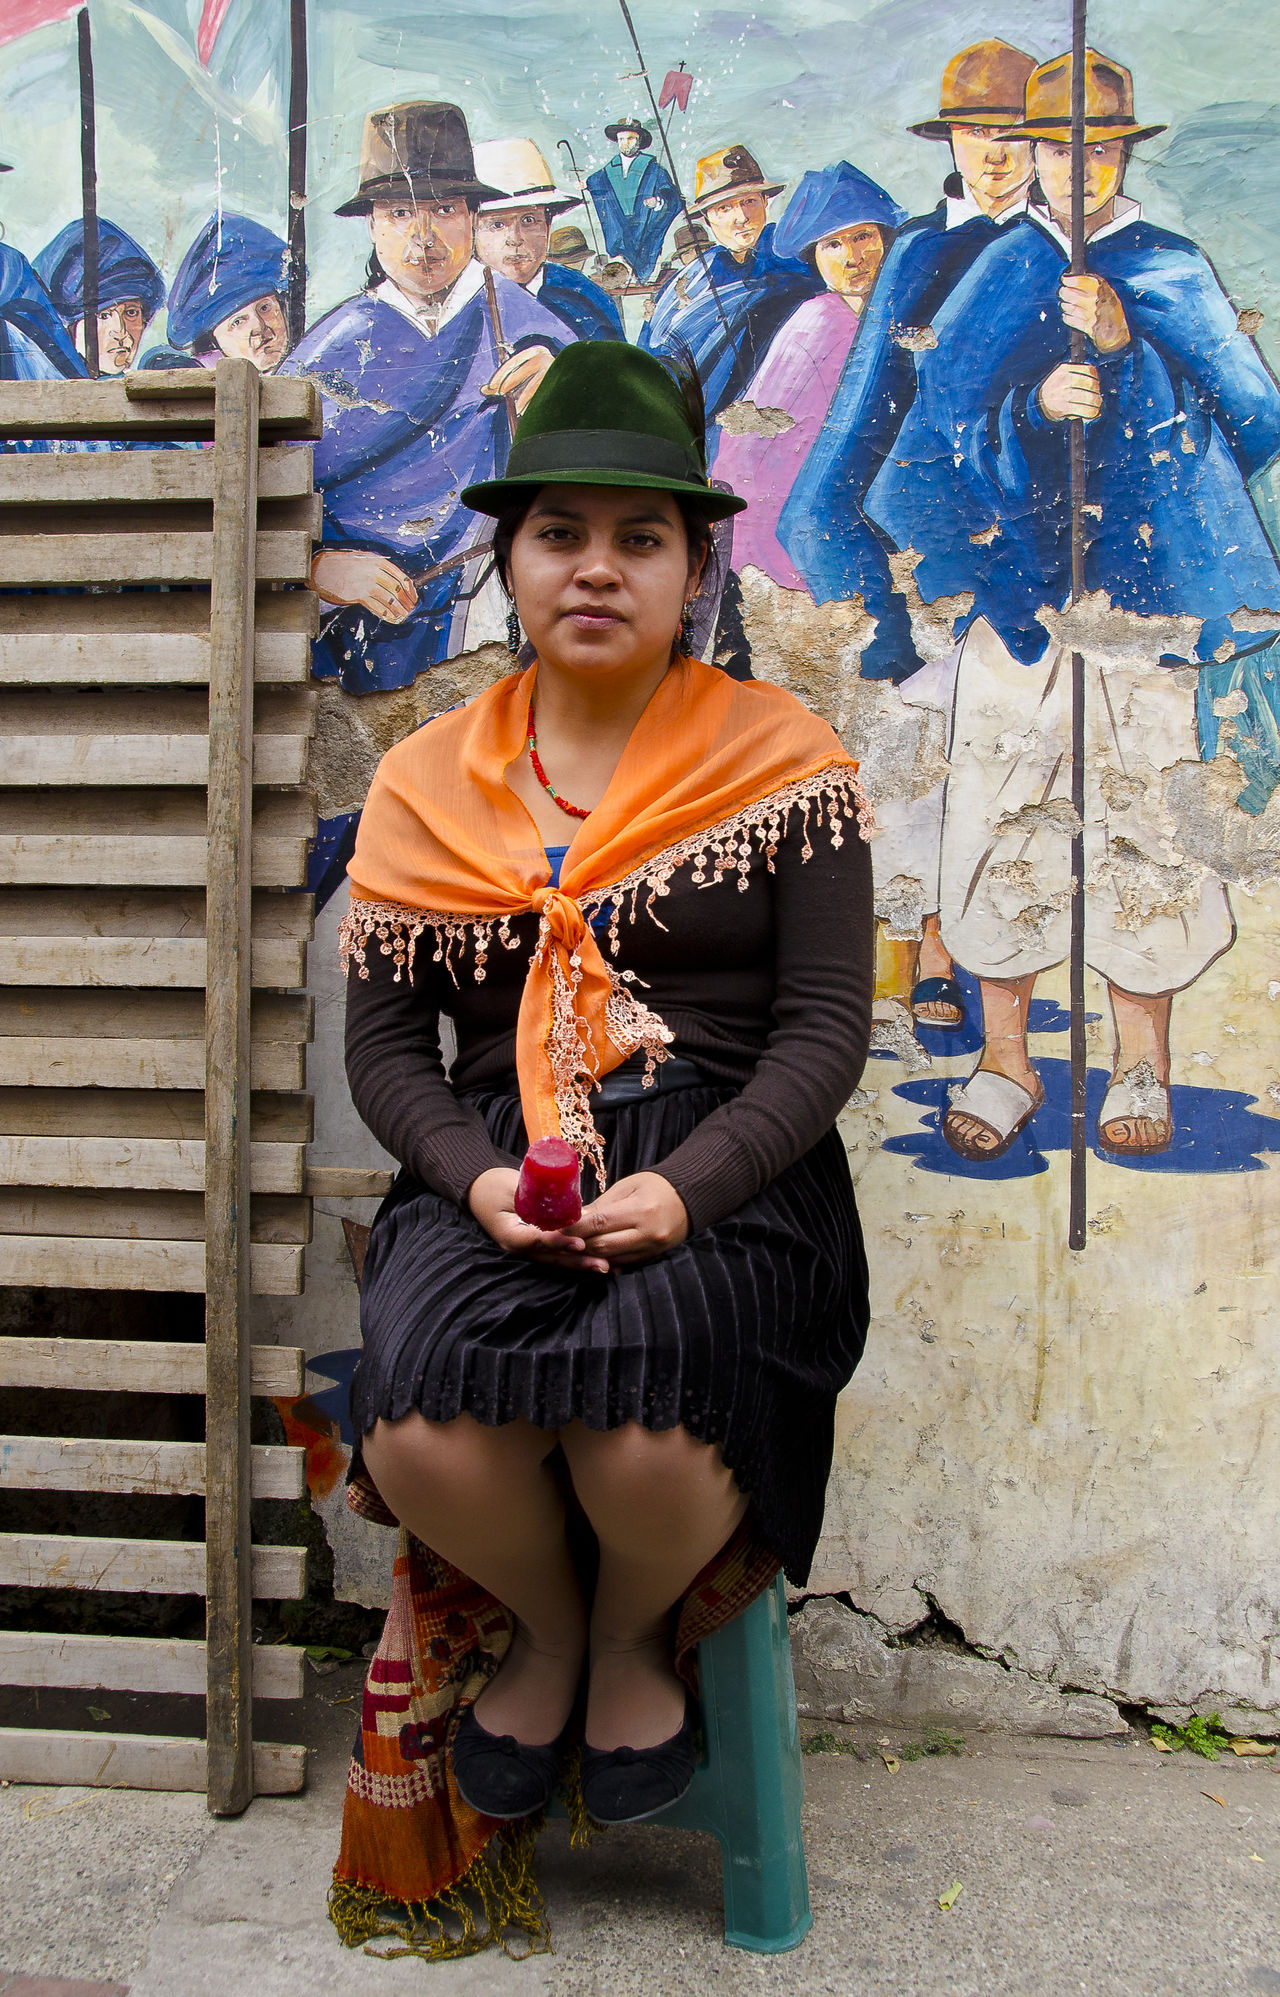 I met this beautiful young woman on a market in Otavalo. I asked her to sit down at the picture for me, and she was so kind to do so! Portrait Portrait Of A Woman Portraits Ecuador Otavalo Market Wearing Hat Hat Hats Ice Ice Cream The Portraitist - 2016 EyeEm Awards Girl Power